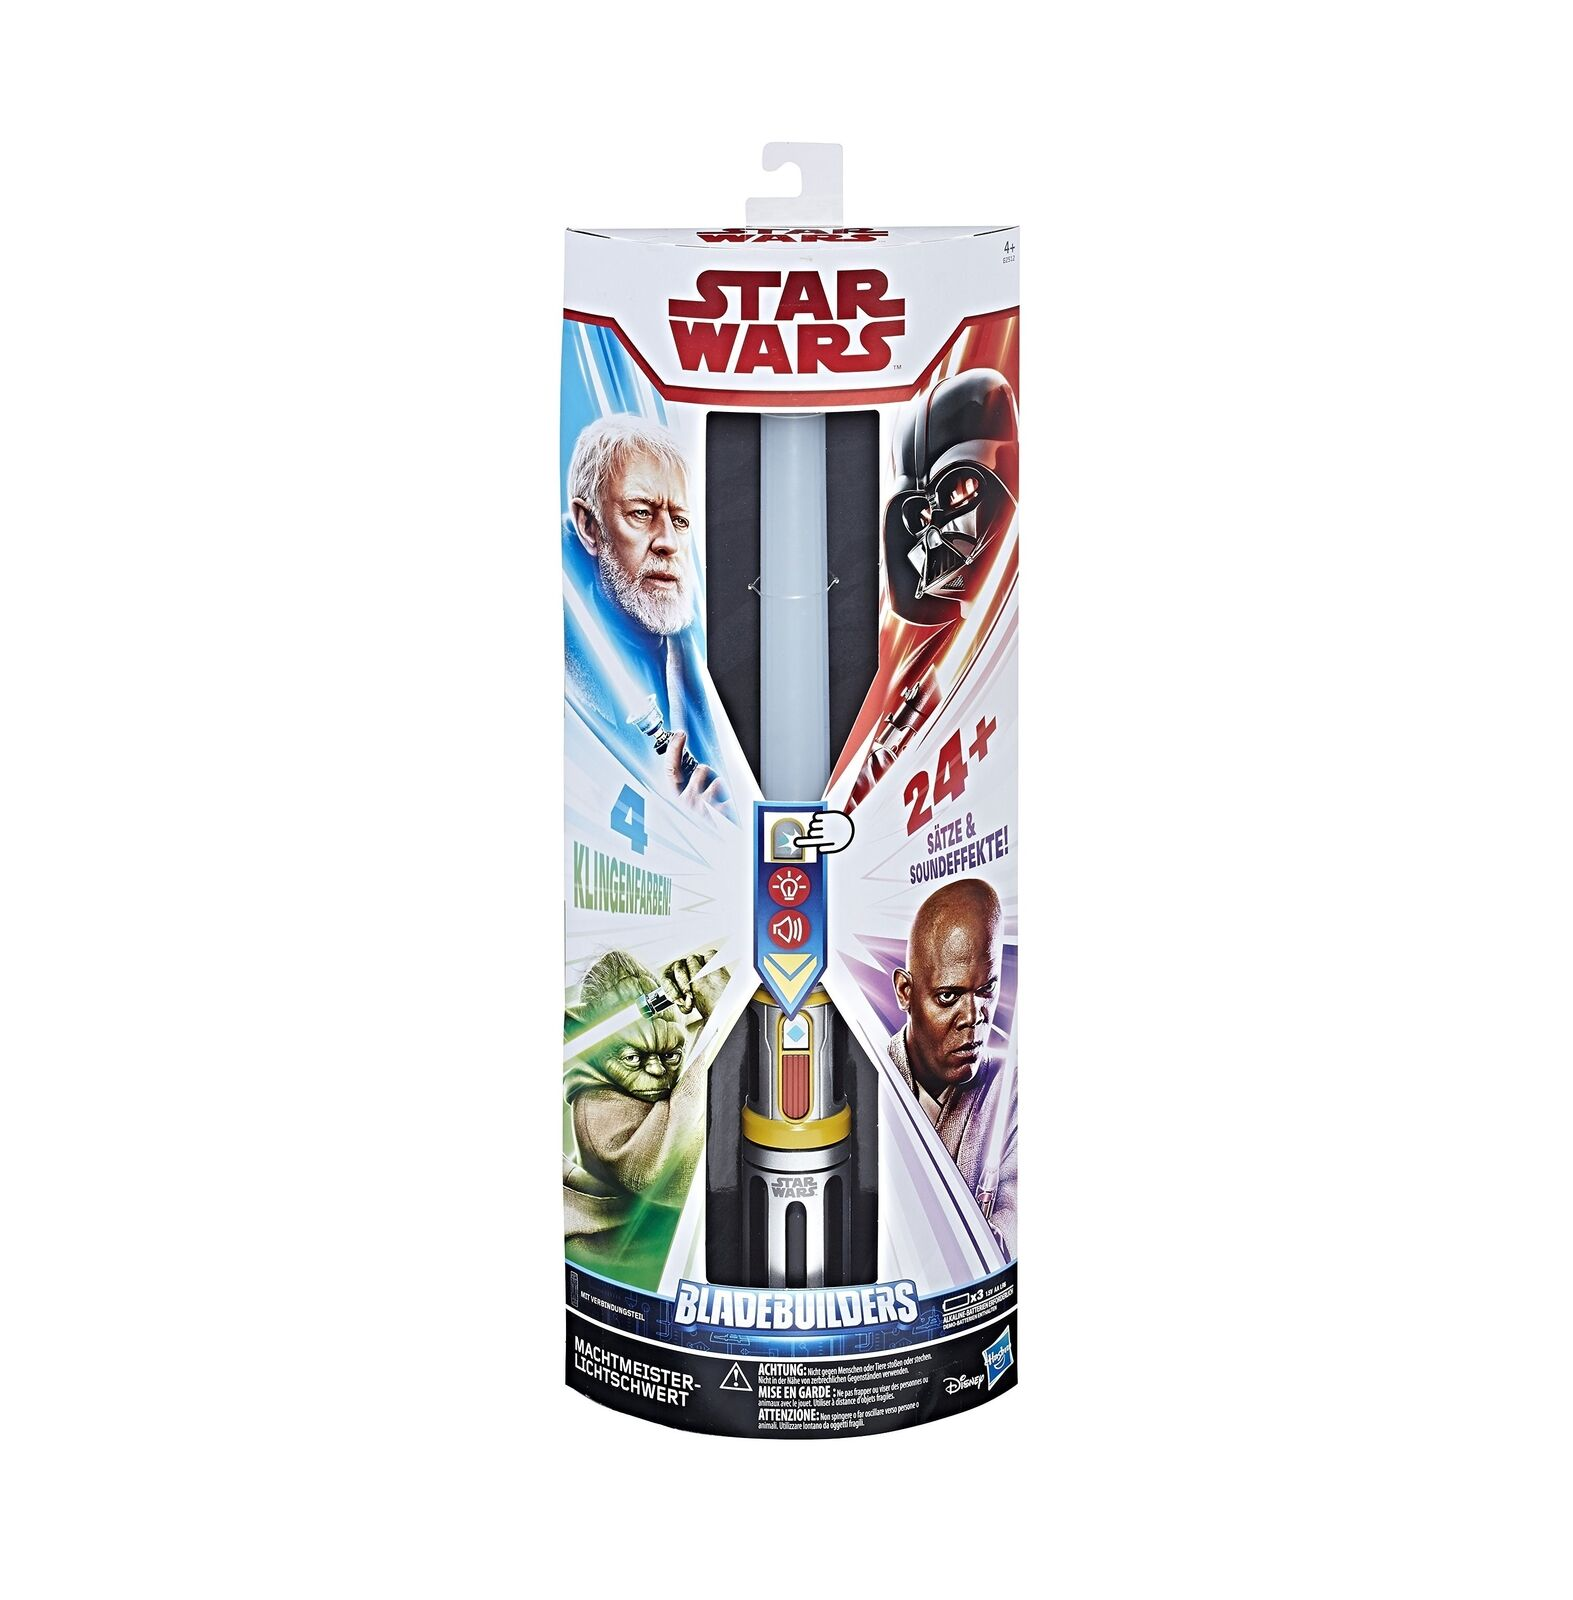 Hasbro Star Wars E2512100 Lightsaber Star Wars Master of the Force Fancy Dr... .